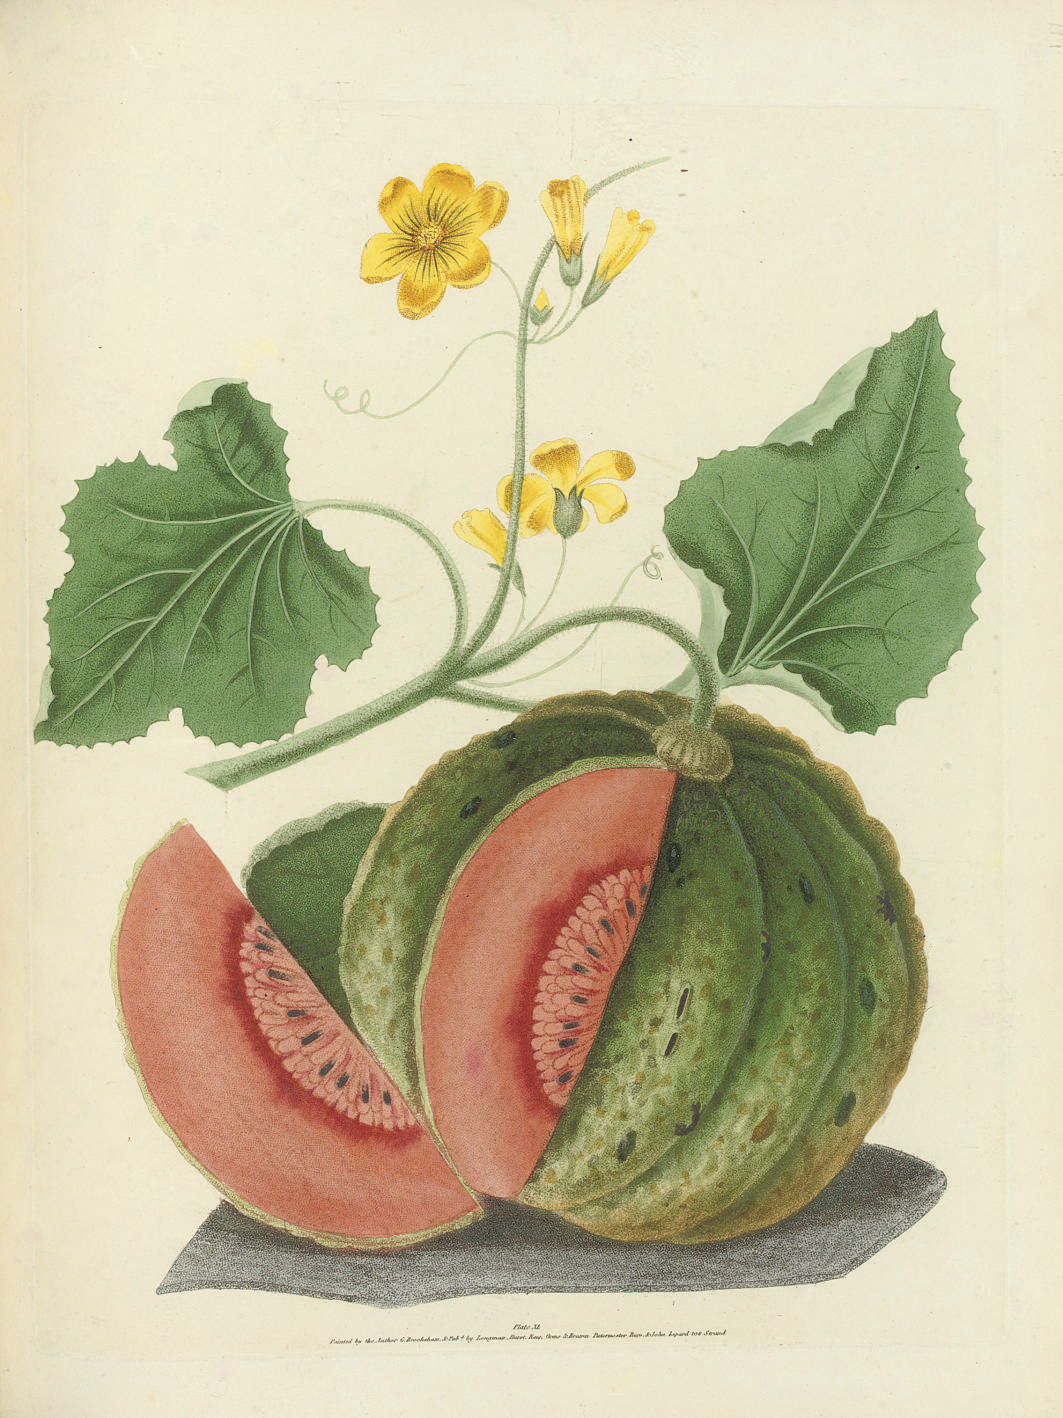 BROOKSHAW, George (1751-1823). Pomona Britannica; or, a collection of the most esteemed fruits at present cultivated in this country. London: T. Bensley for Longman, Hurst, Rees, Orme & Brown and John Lepard, [1816-]1817.